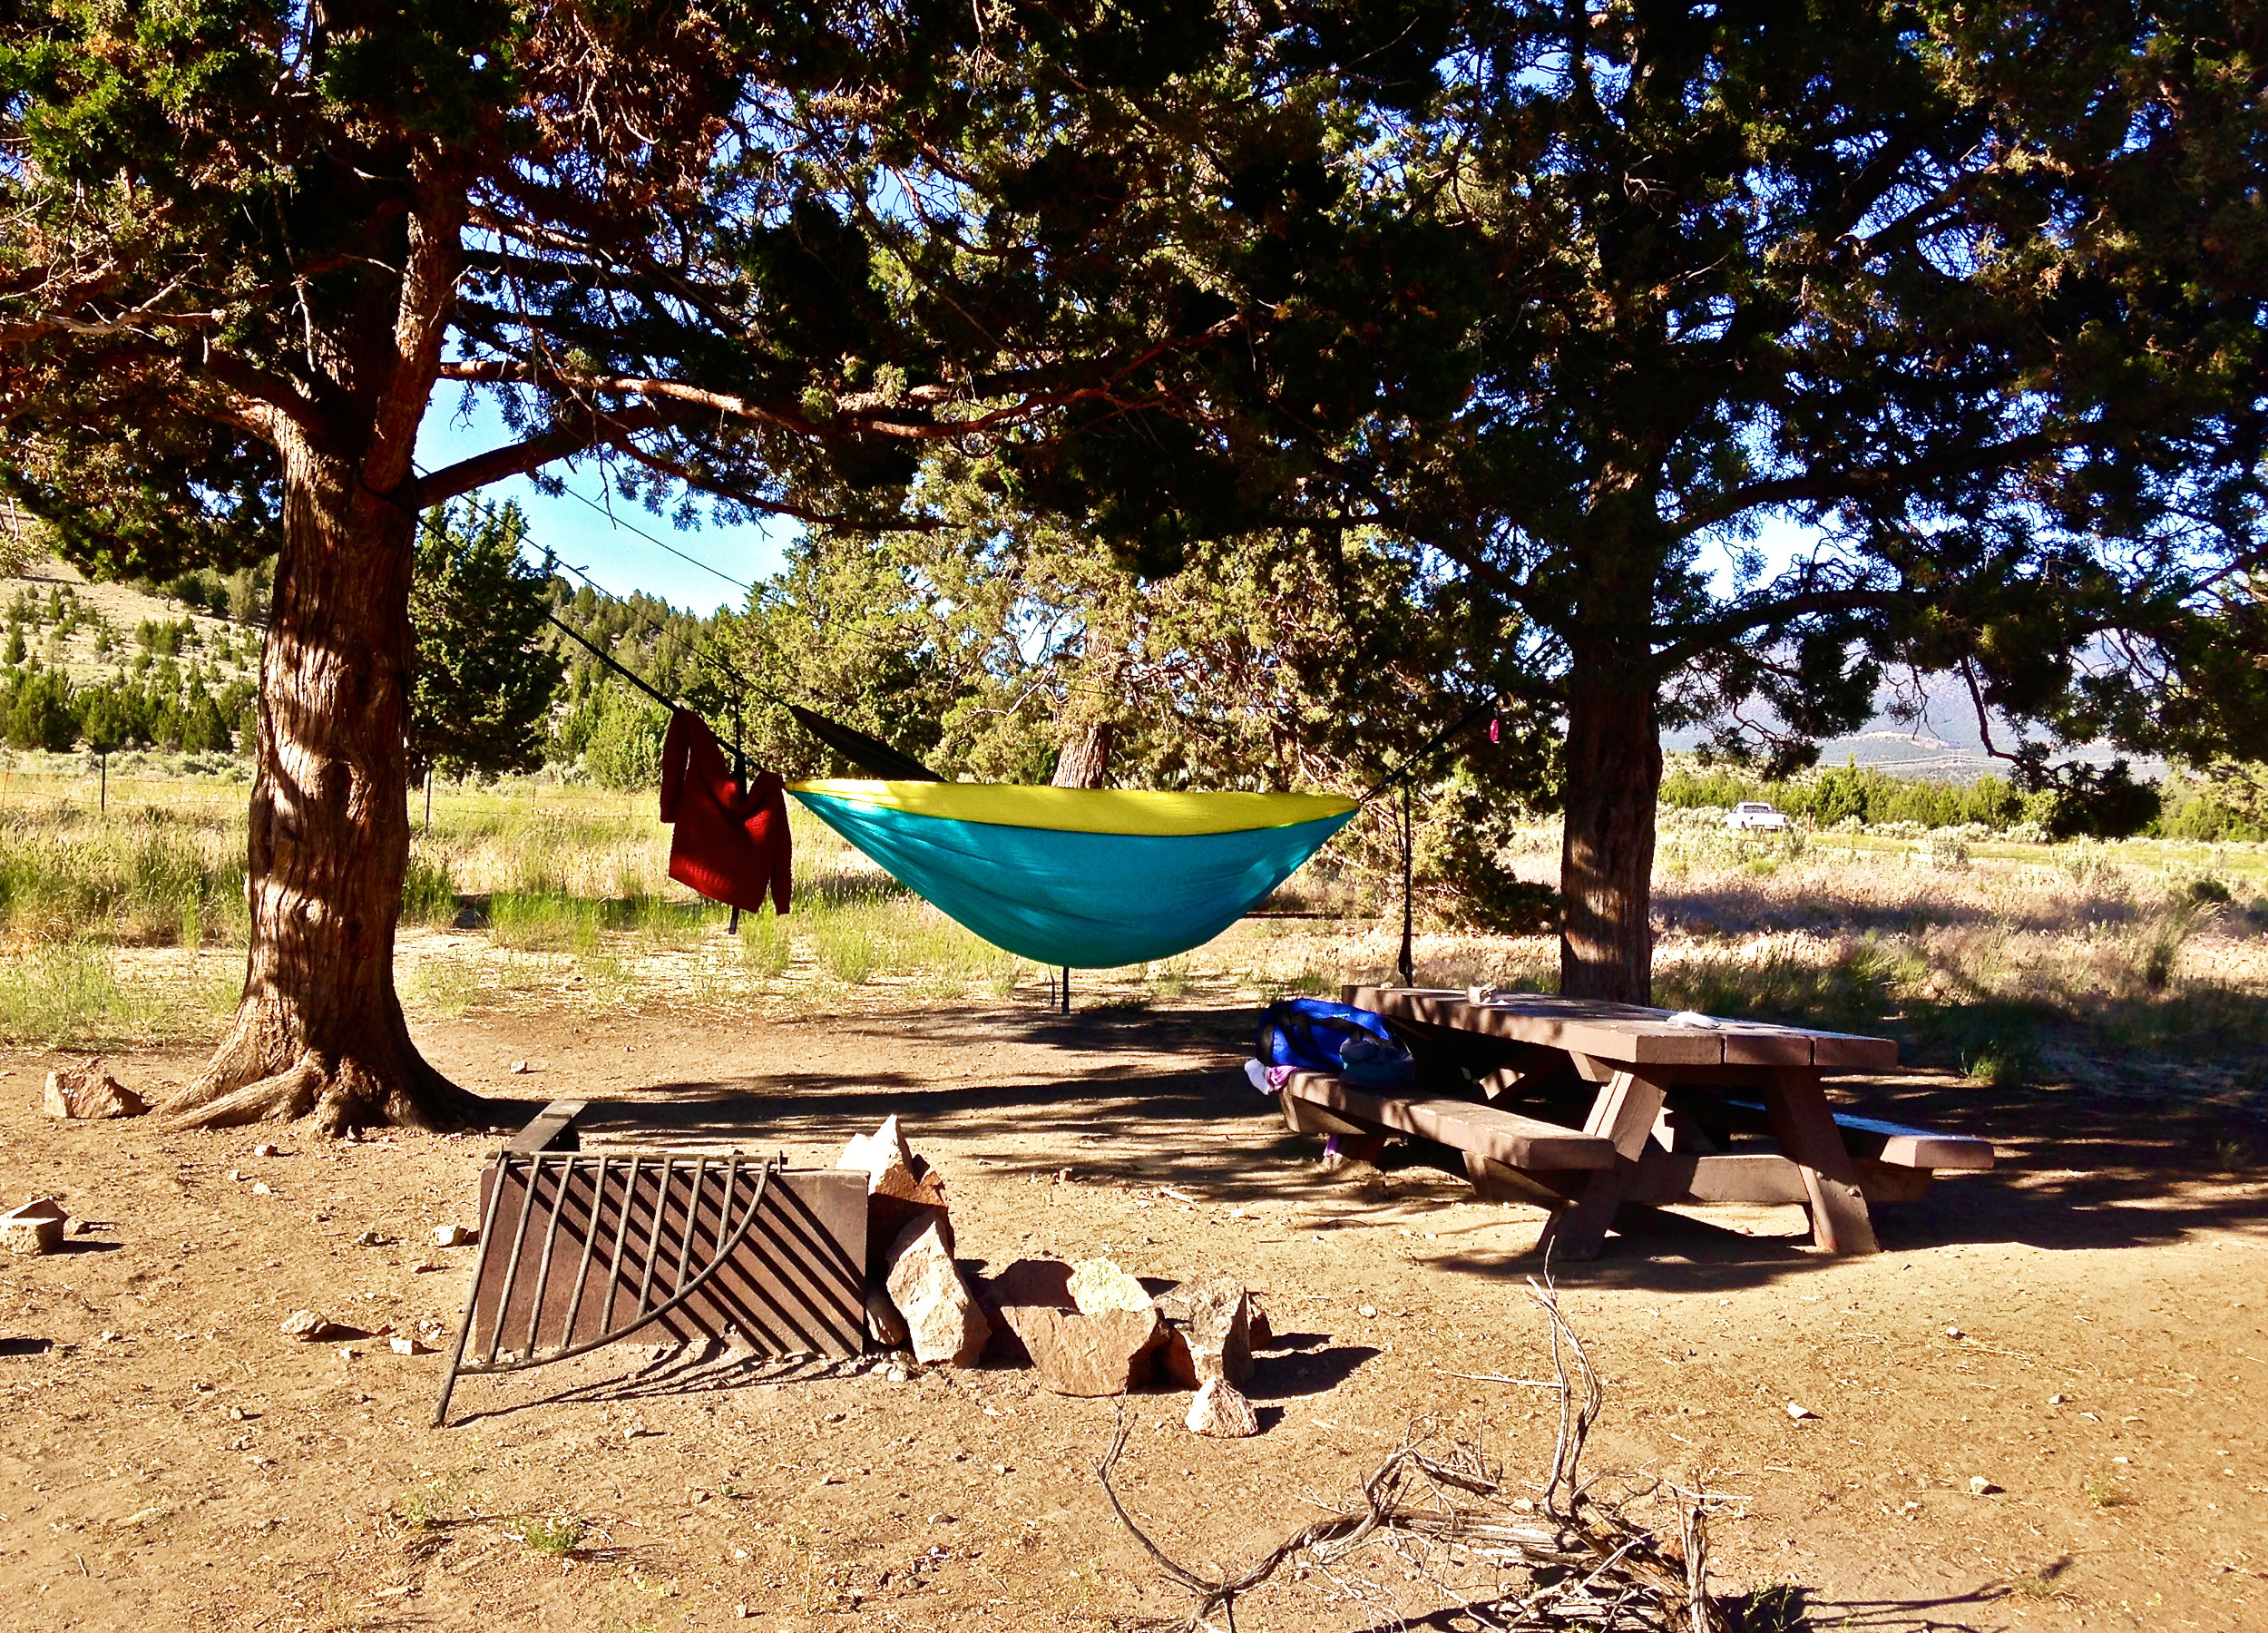 some sites have trees that make good hammock spots at Skull Hollow Campground